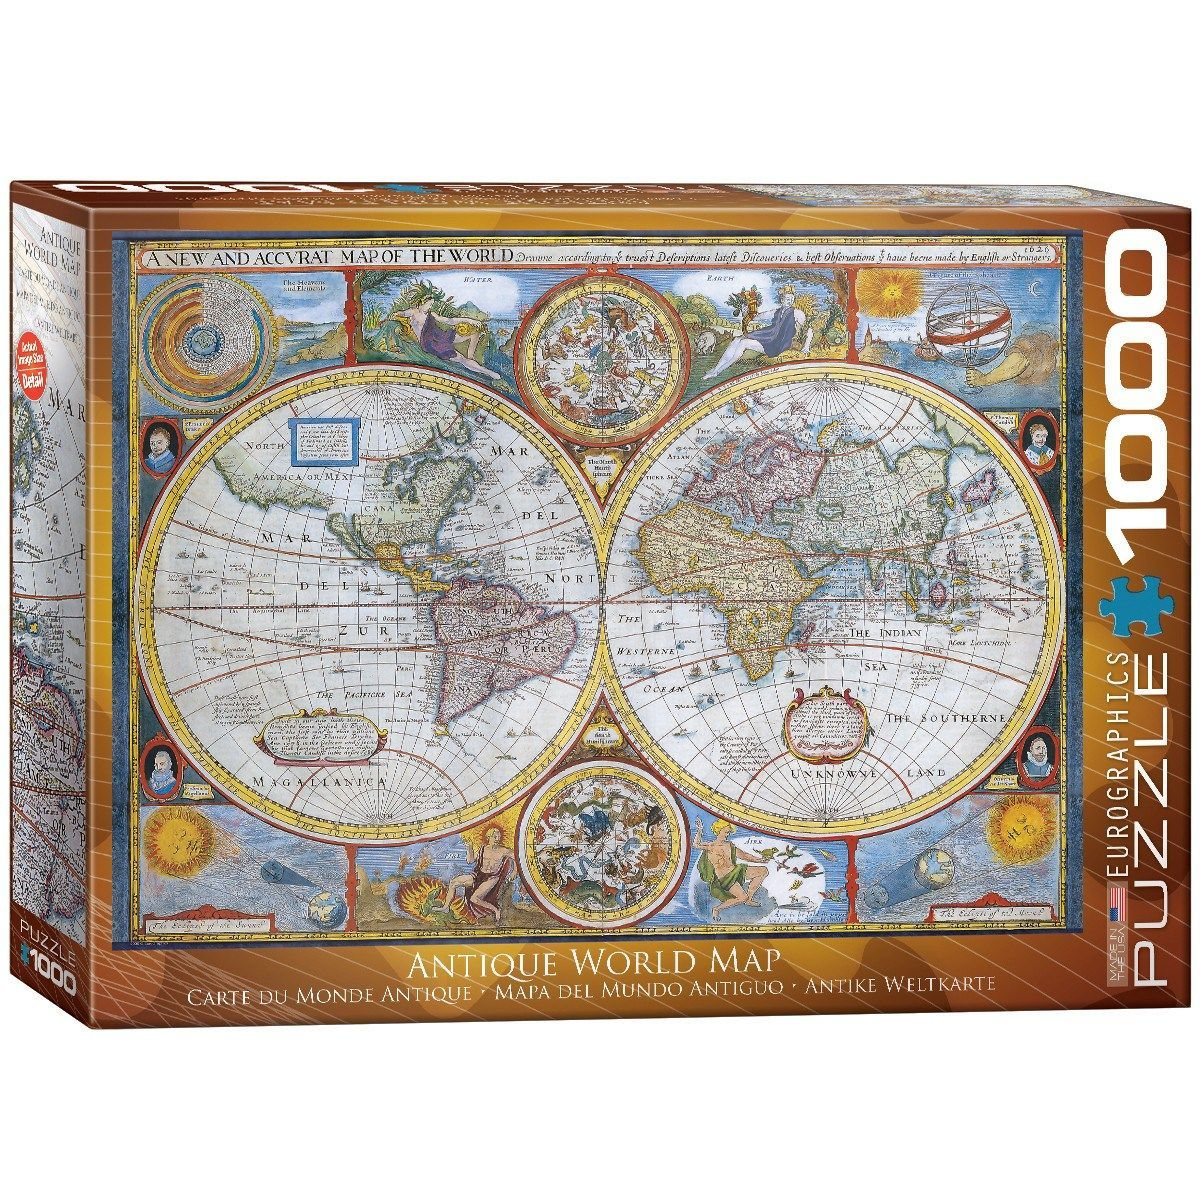 Antique world map 1000 piece jigsaw puzzle item 6000 2006 antique world map 1000 piece jigsaw puzzle item 6000 2006 gumiabroncs Images